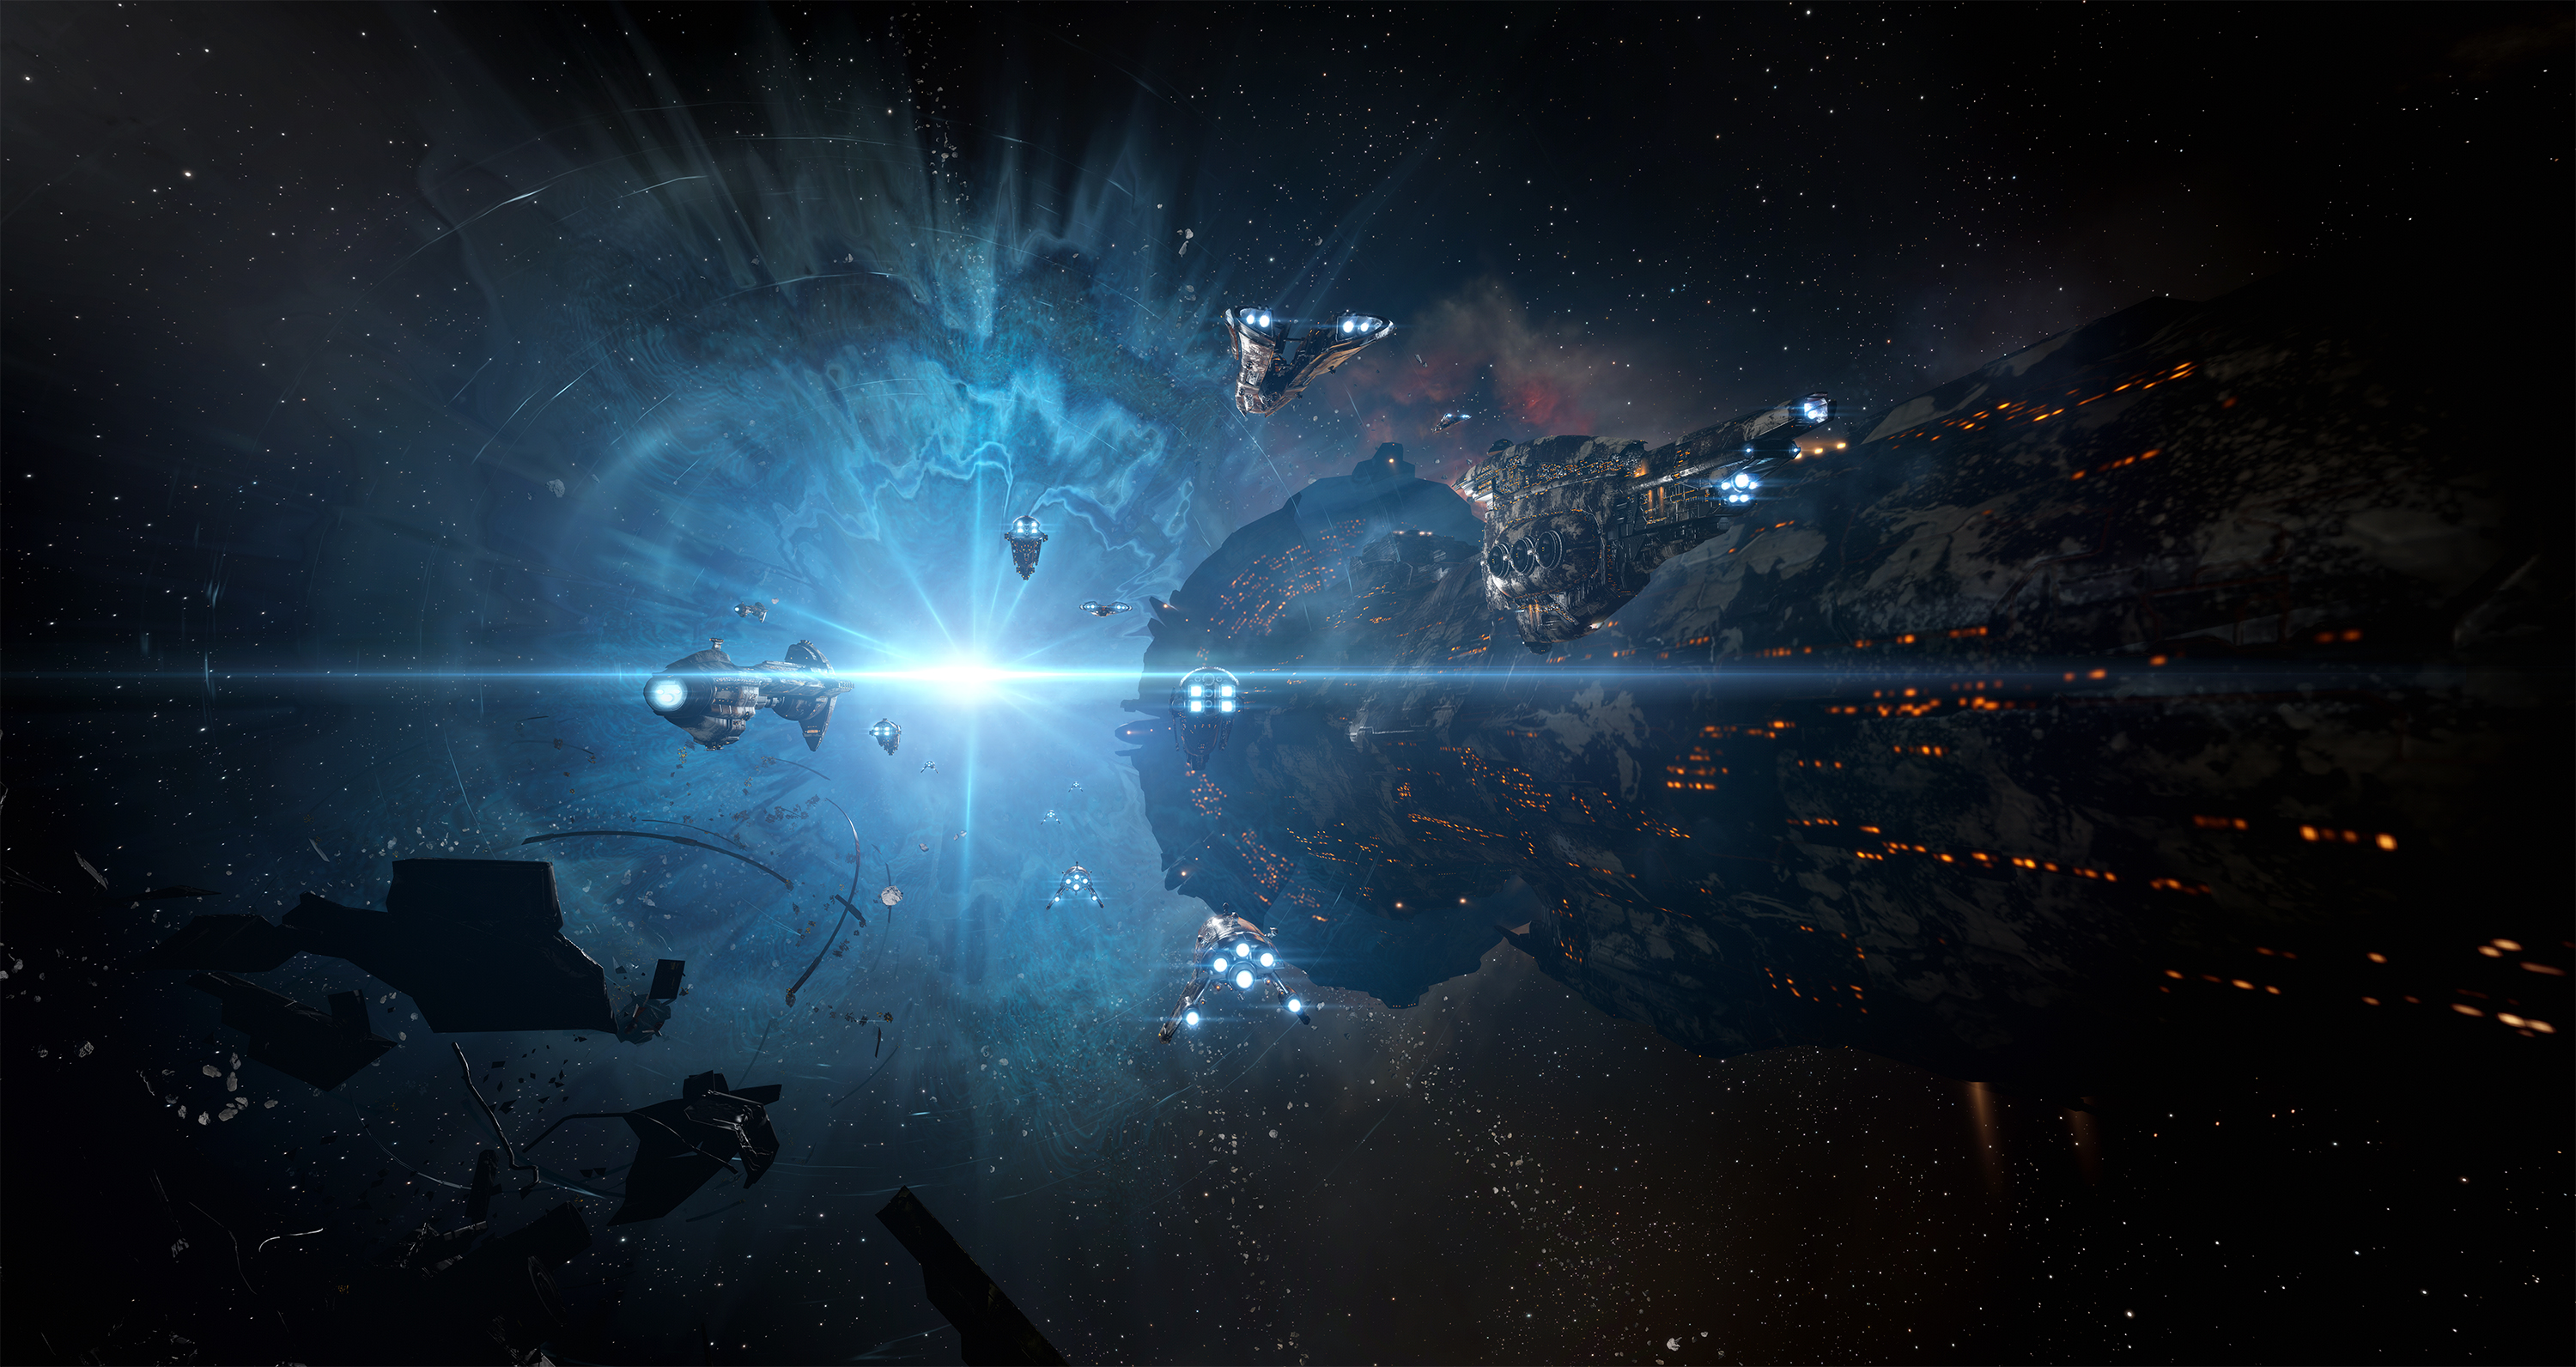 Eve online promo code - Chewy coupon code